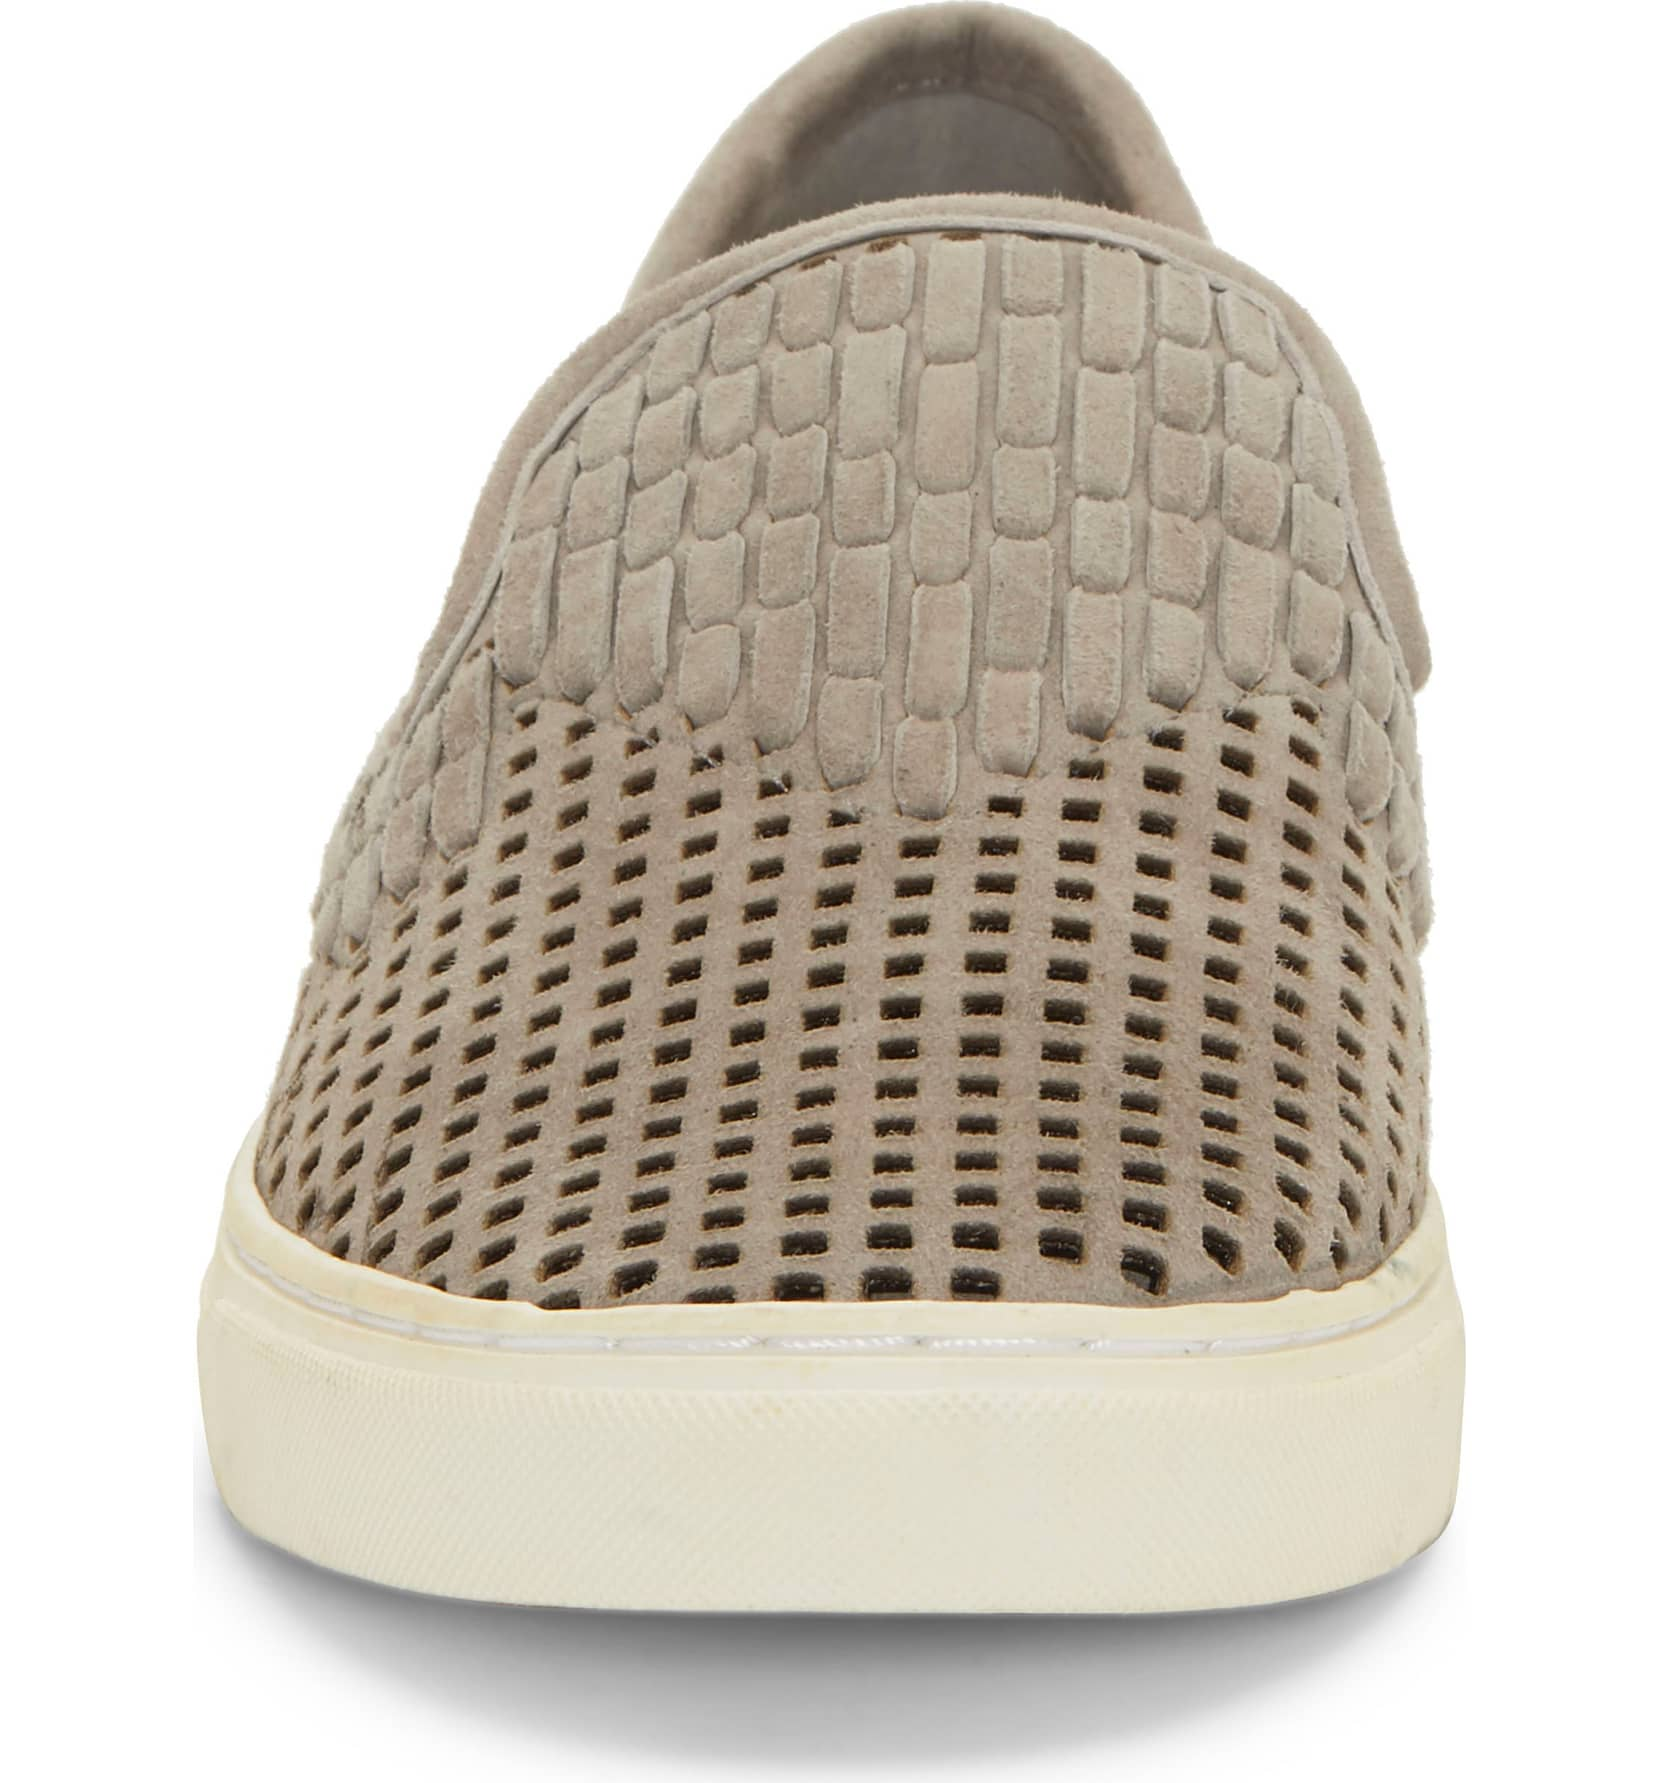 Vince-Camuto-Bristie-Storm-Grey-Leather-Woven-White-Sole-Slip-On-Sneakers thumbnail 45